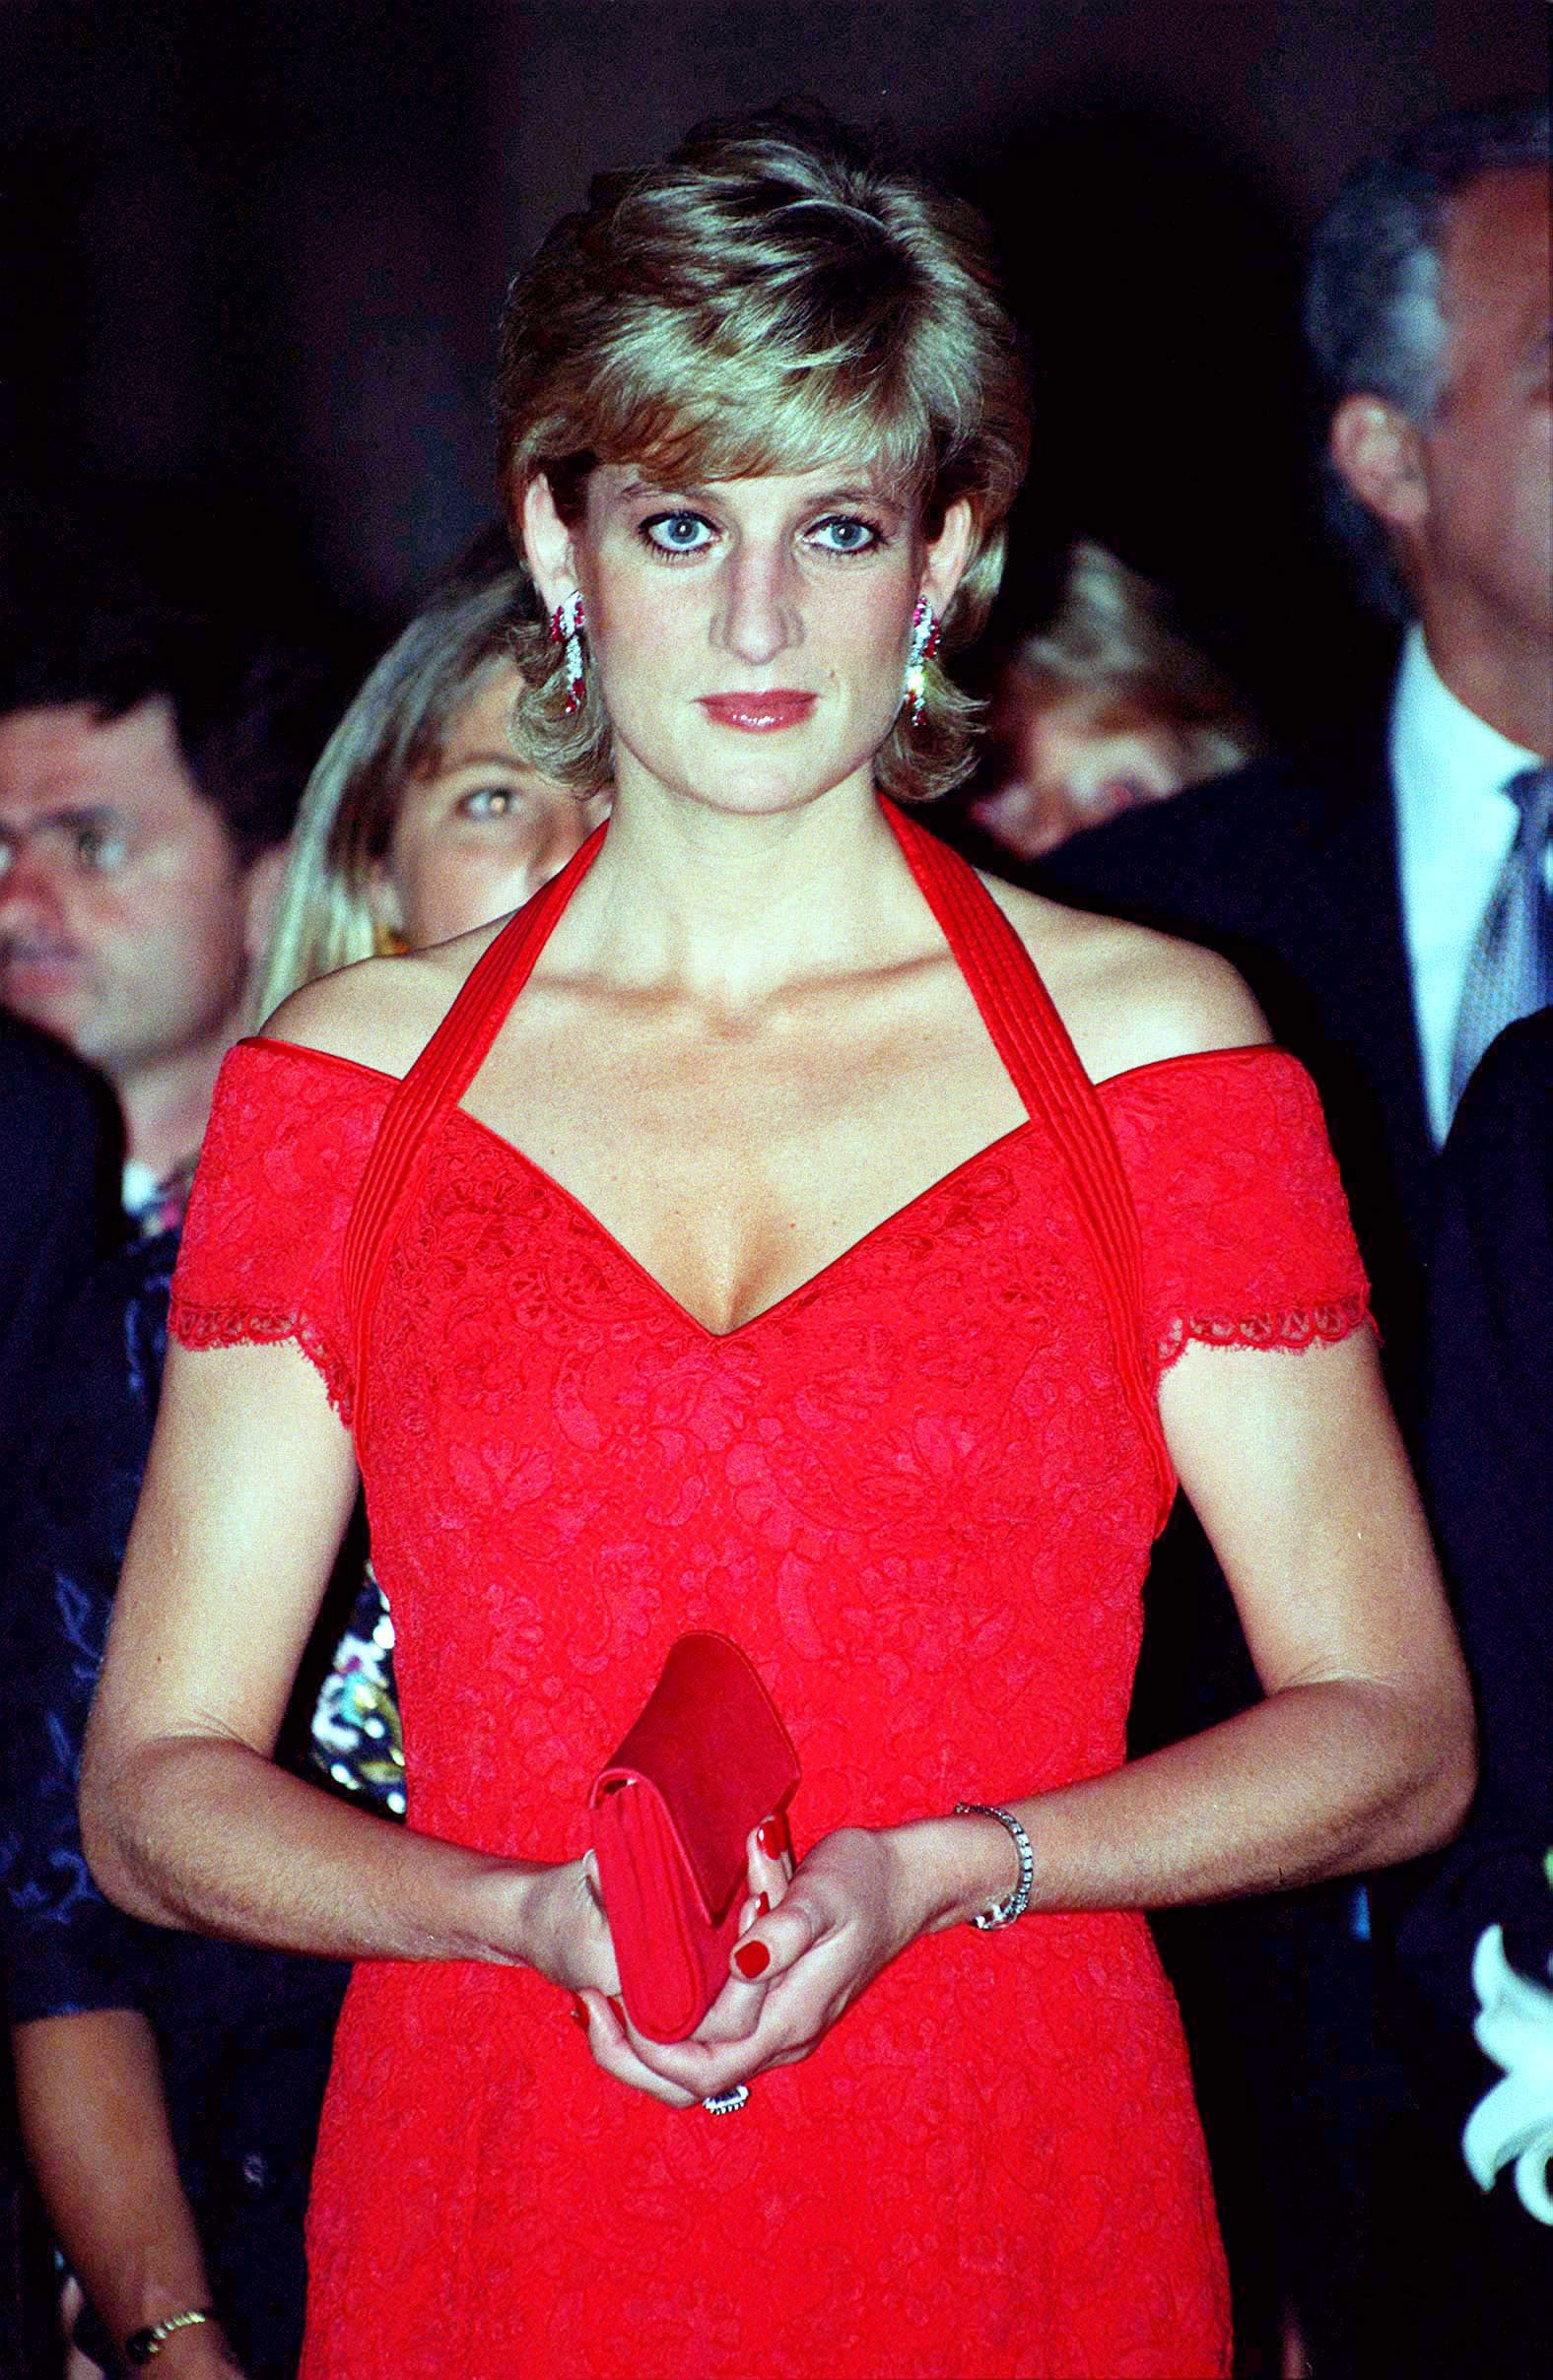 Princess Diana Fashion Exhibition At Kensington Palace Popsugar Fashion